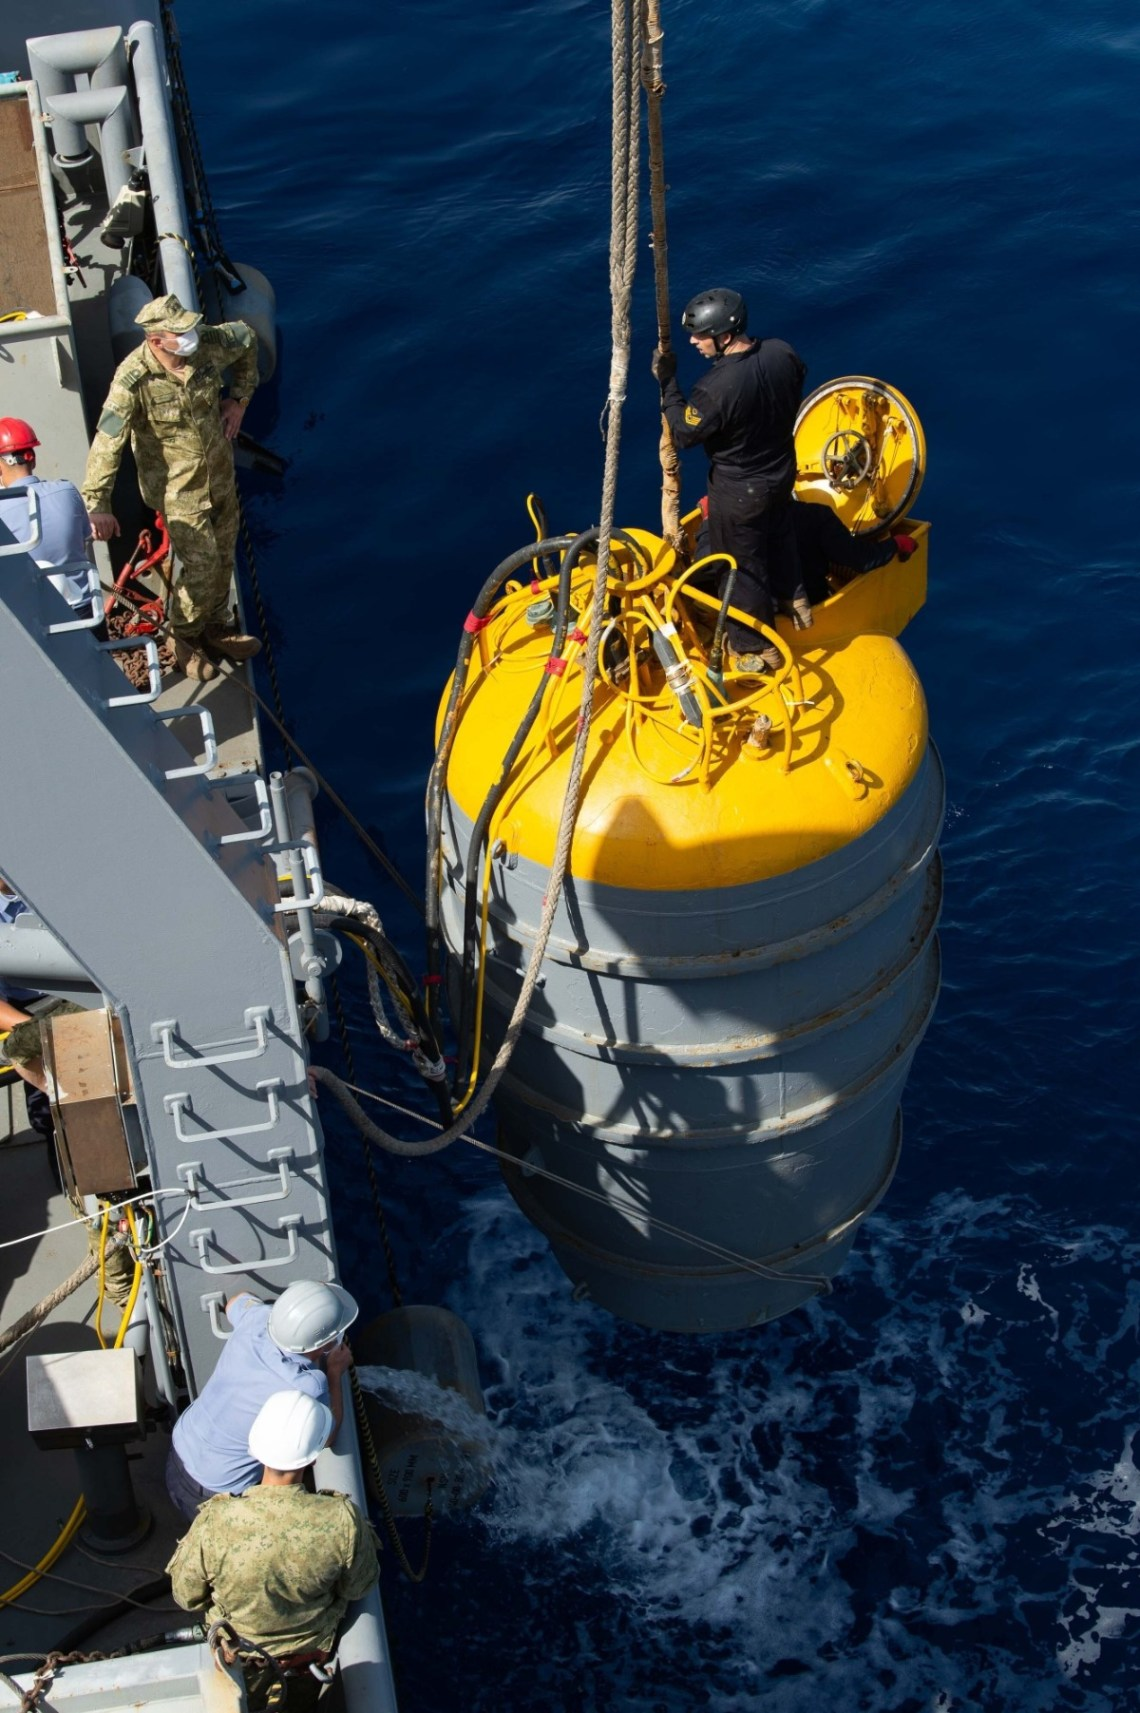 NATO Submarine Search and Rescue Exercise Dynamic Monarch/Kurtaran 21 Concludes